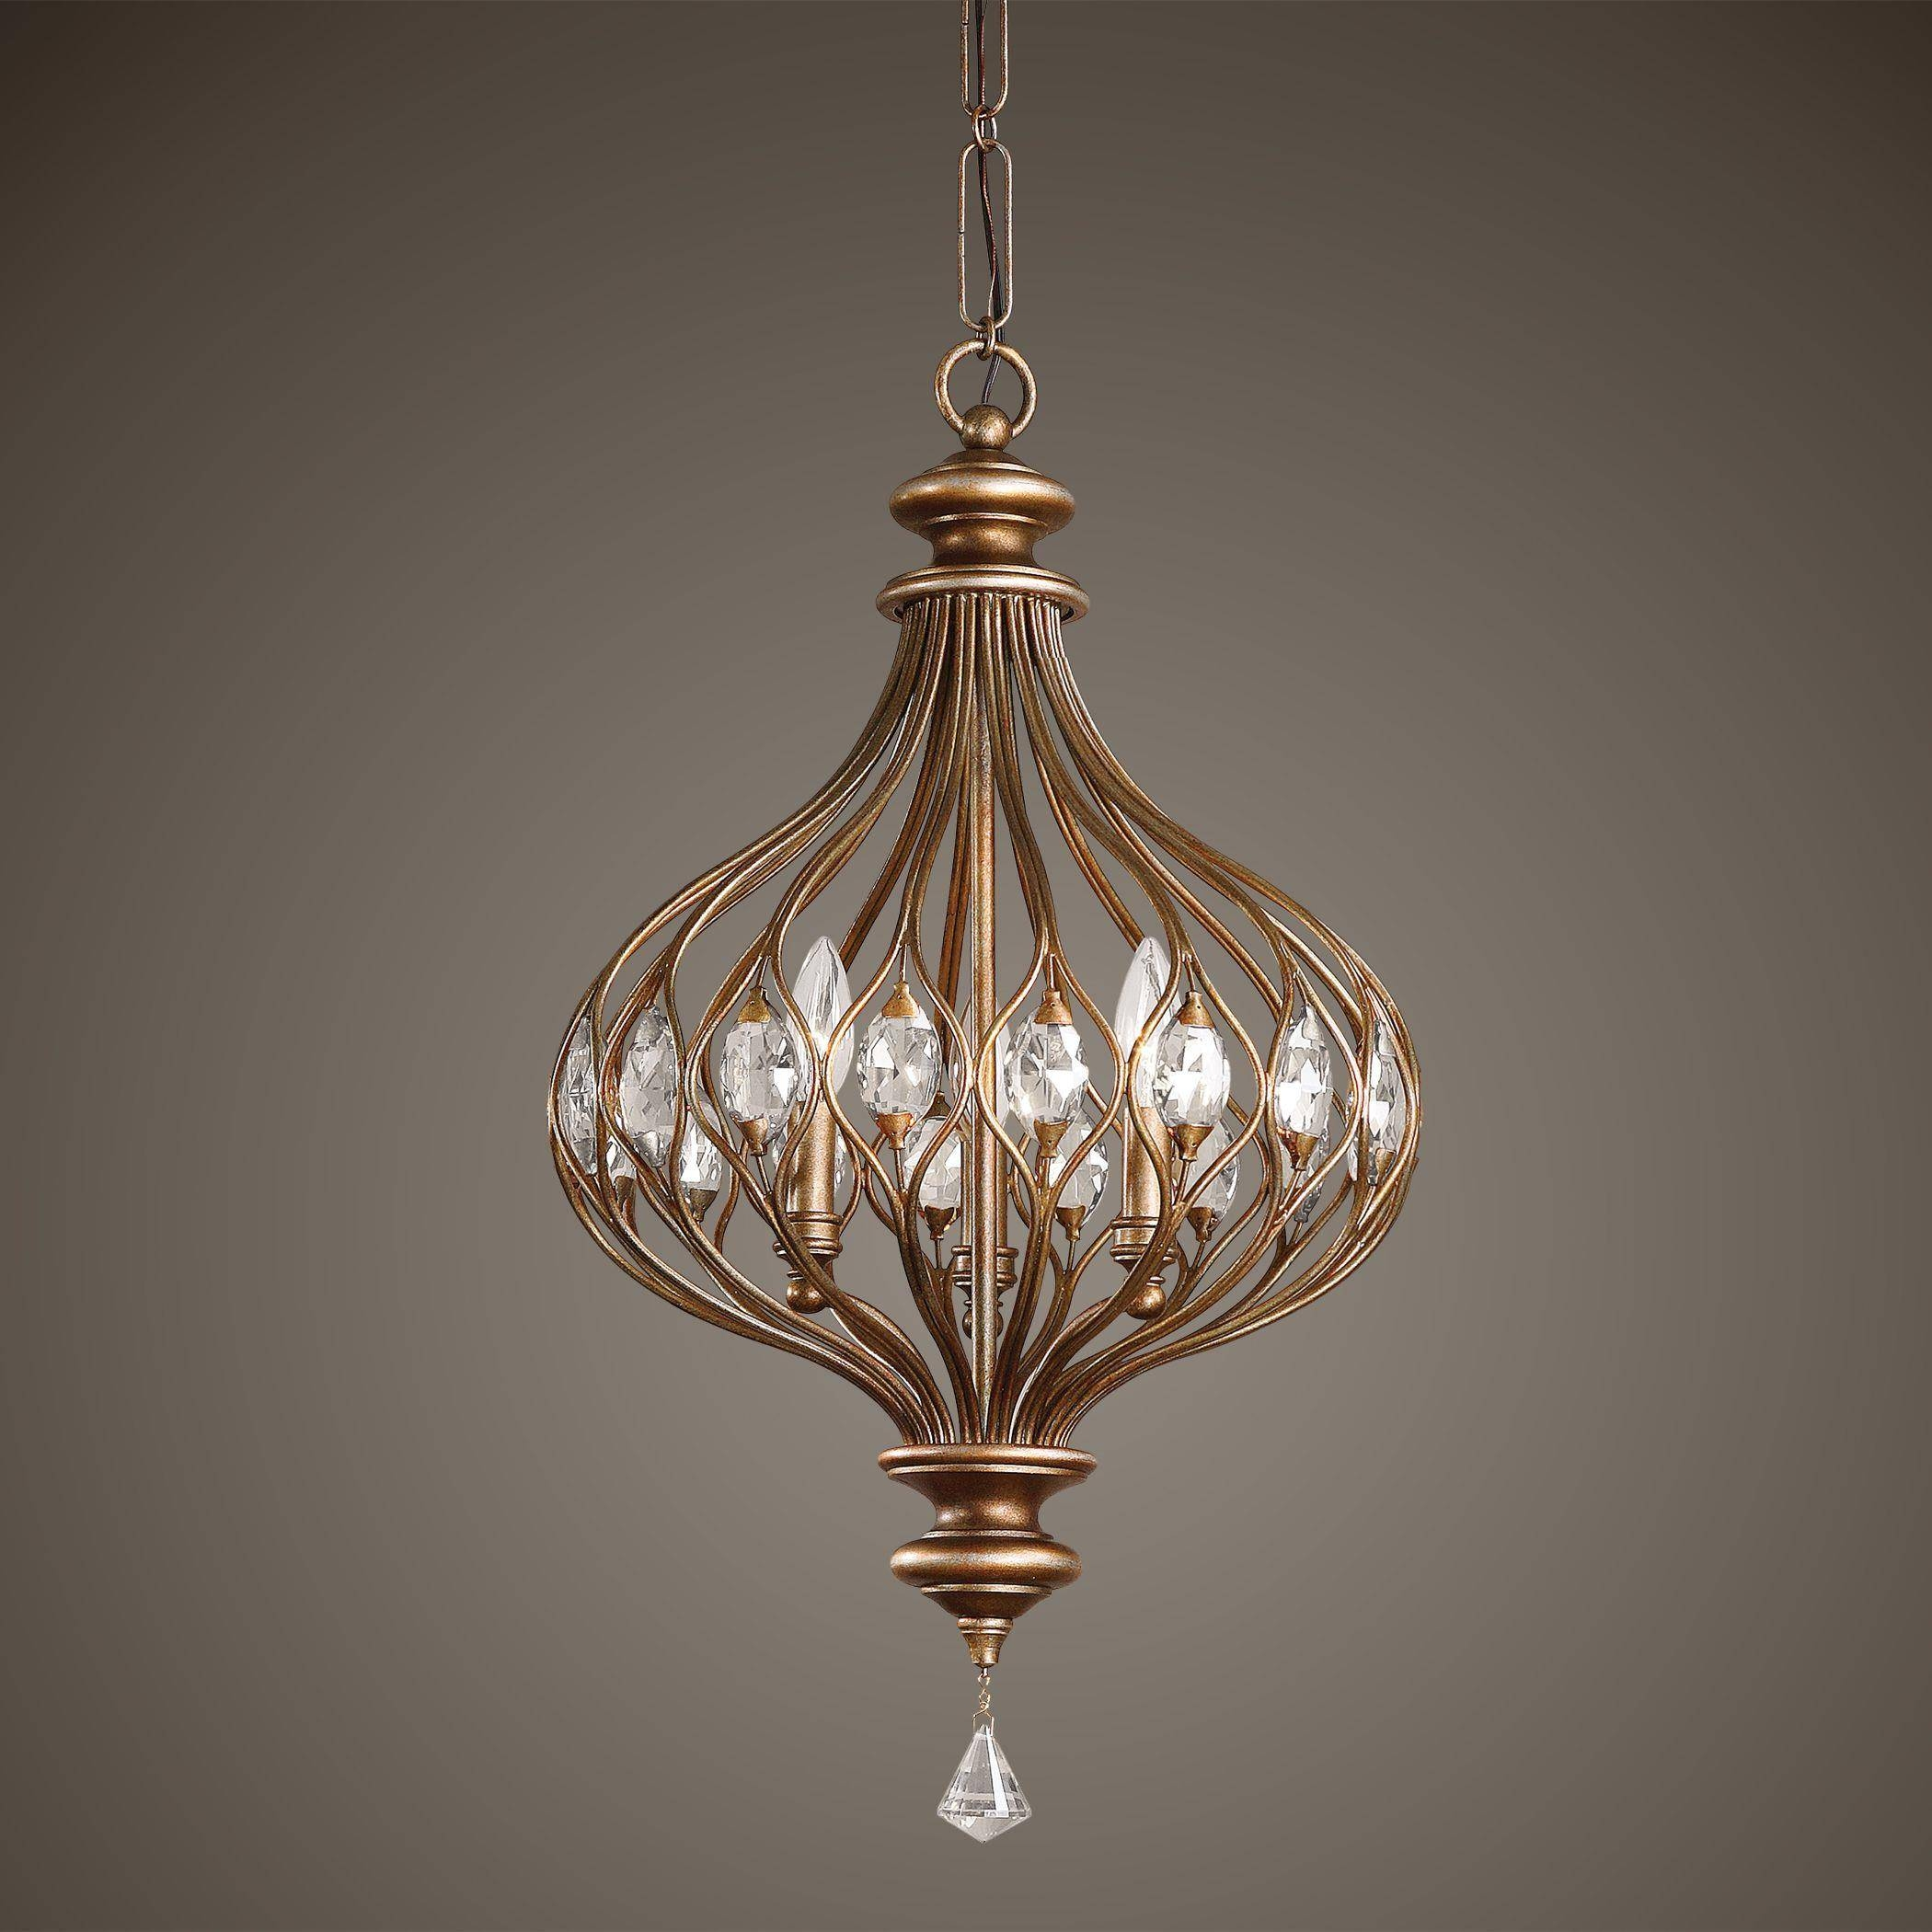 Uttermost 21966 Pendant Lighting - Sabina within Uttermost Pendant Lights (Image 4 of 15)